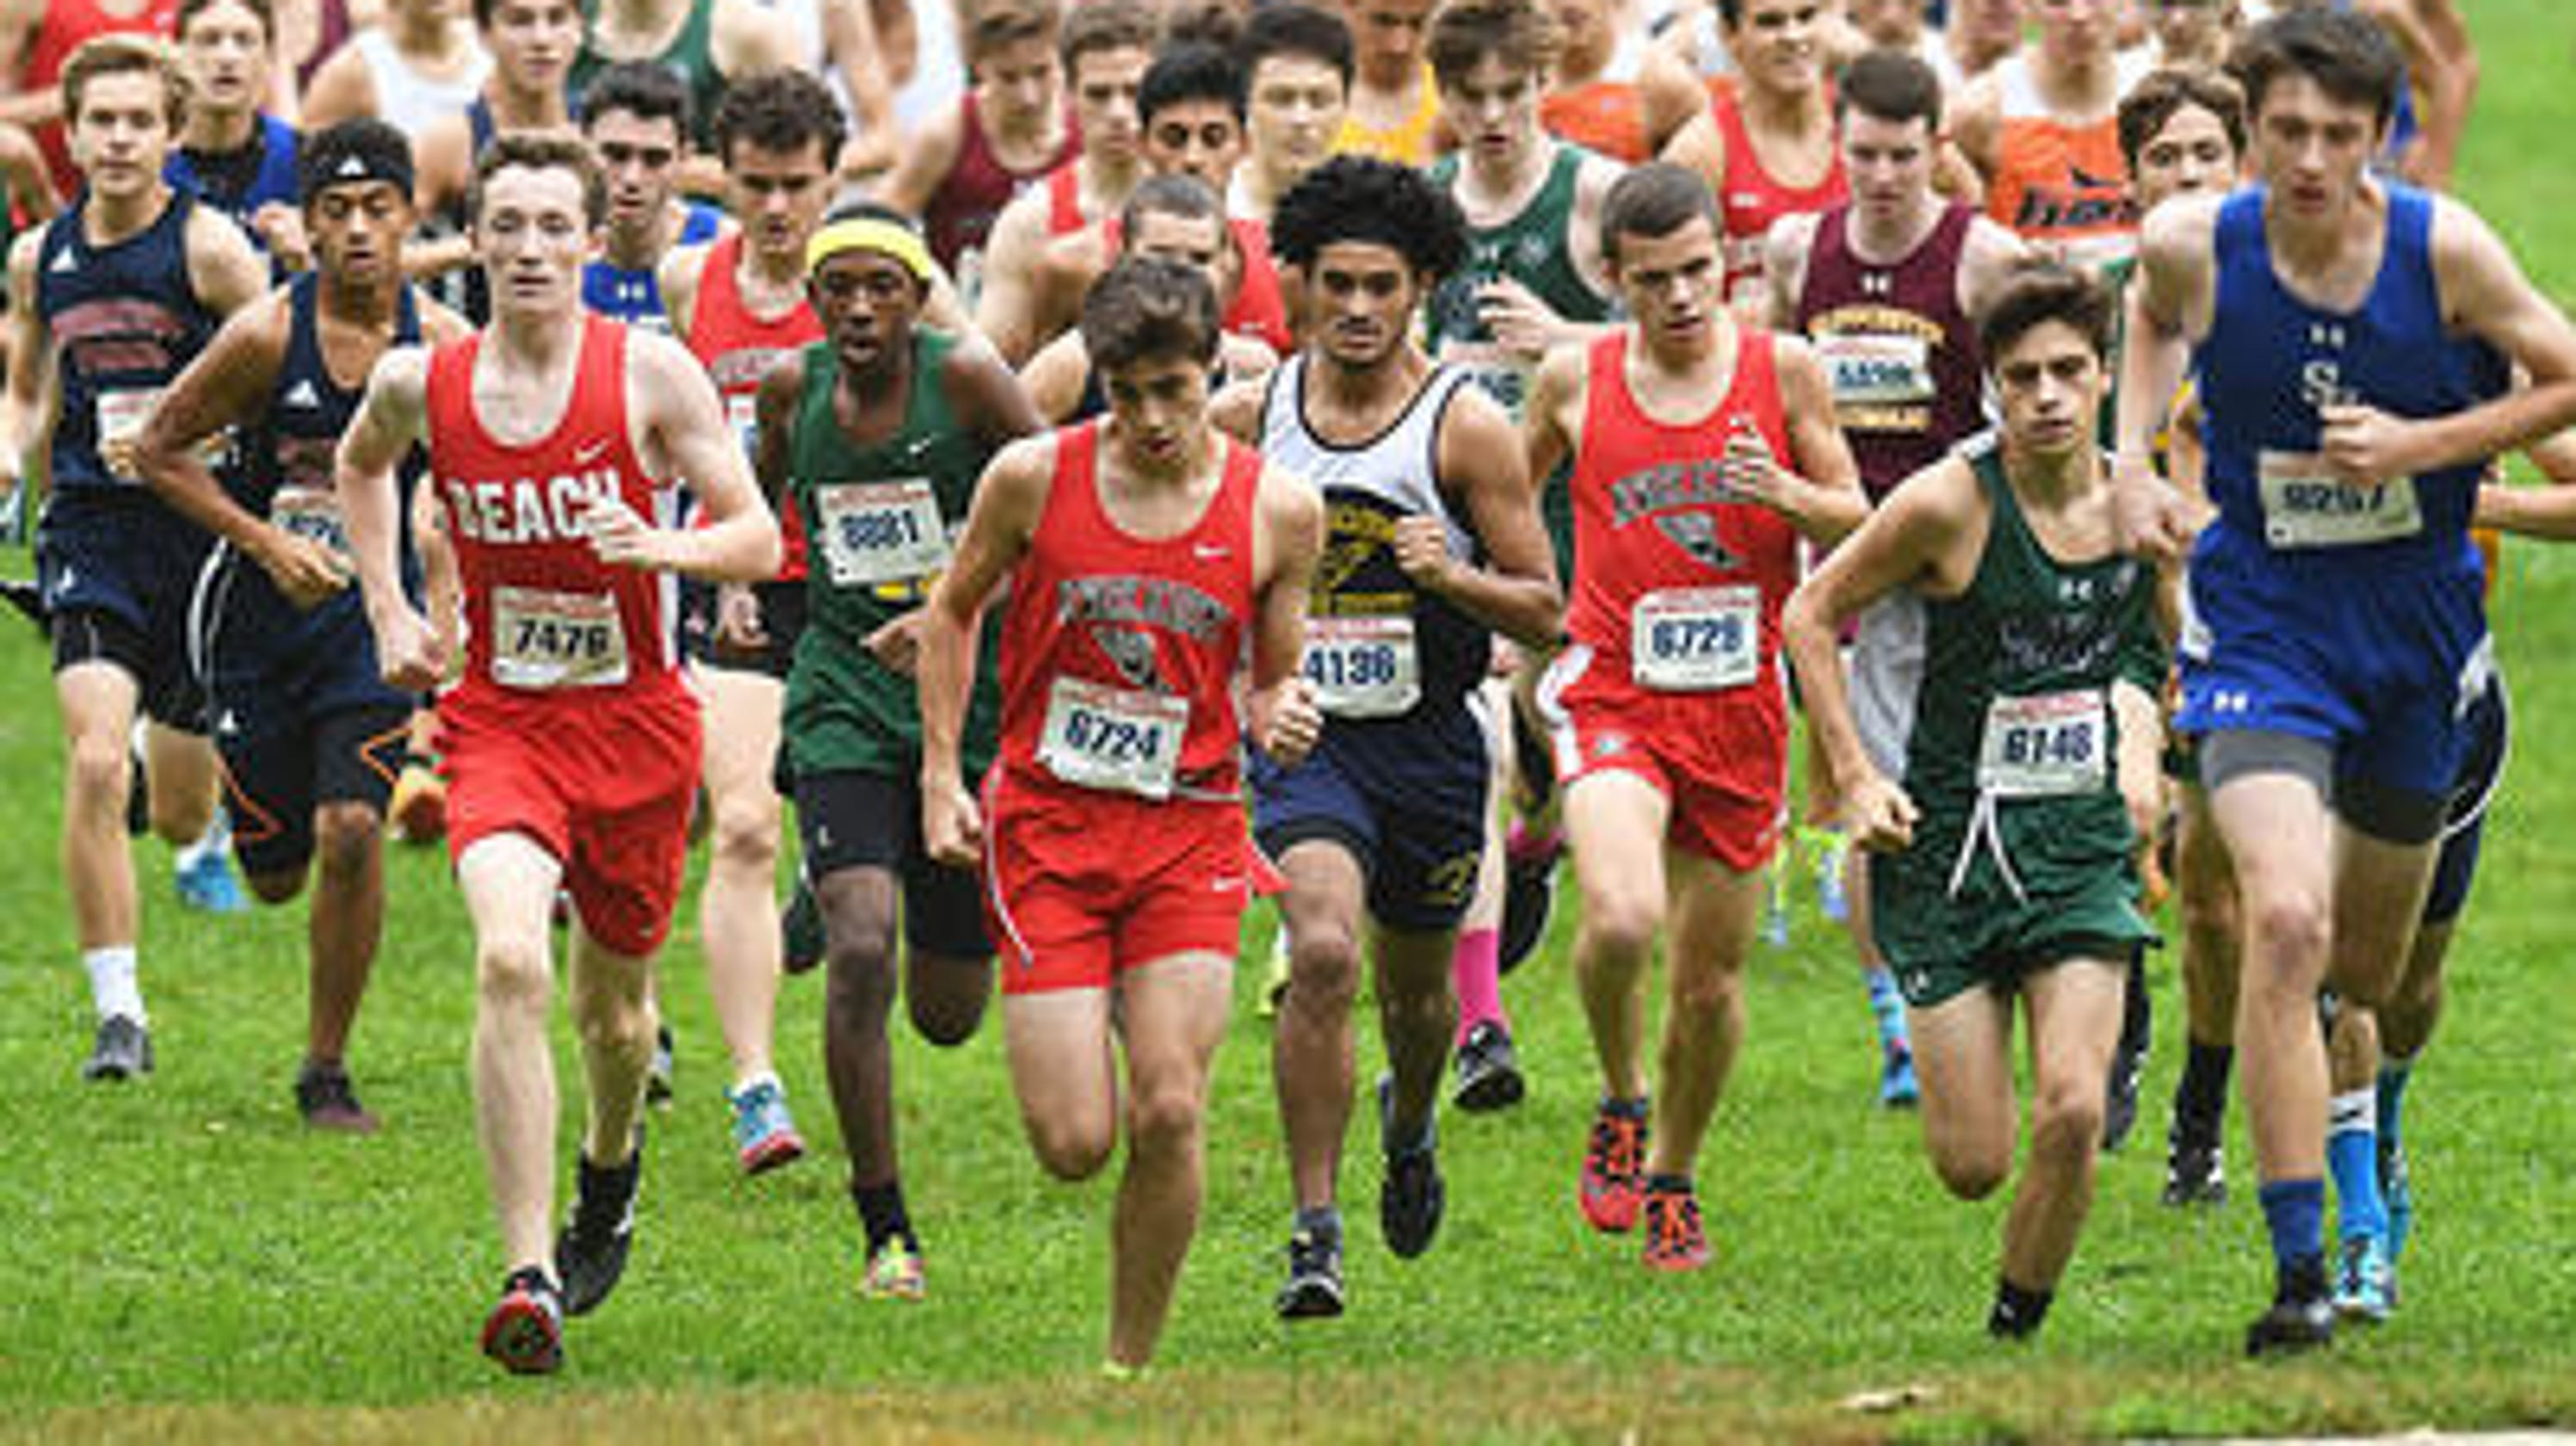 NJ high school cross country: 4,500 compete at Shore Coaches Meet at Holmdel